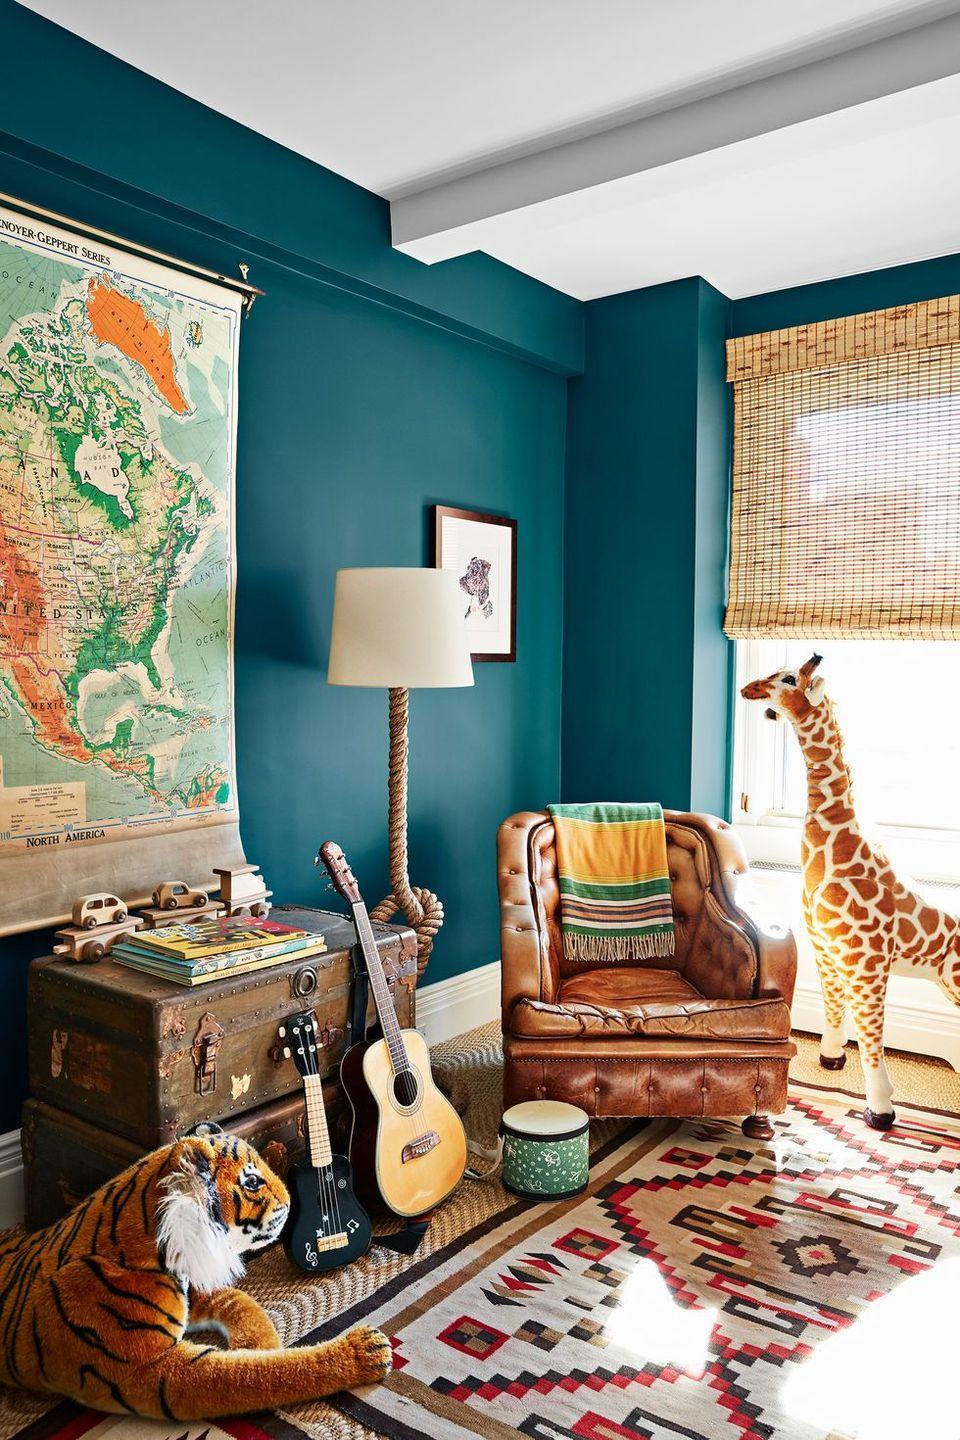 <p>Instill a sense of wonder and exploration early on with educational wall art (like maps) and storied collectables, like antique trunks that double a storage units. The bonus? Since storage is one thing you know you'll always need, they'll last and age with your child. In this child's room designed by Starrett Zenko Ringbom, the timeless pieces—like the ottoman and floor lamp—give the room a refined edge that will age well. And those stacked antique trunks bring in both character and extra storage for toys.</p>